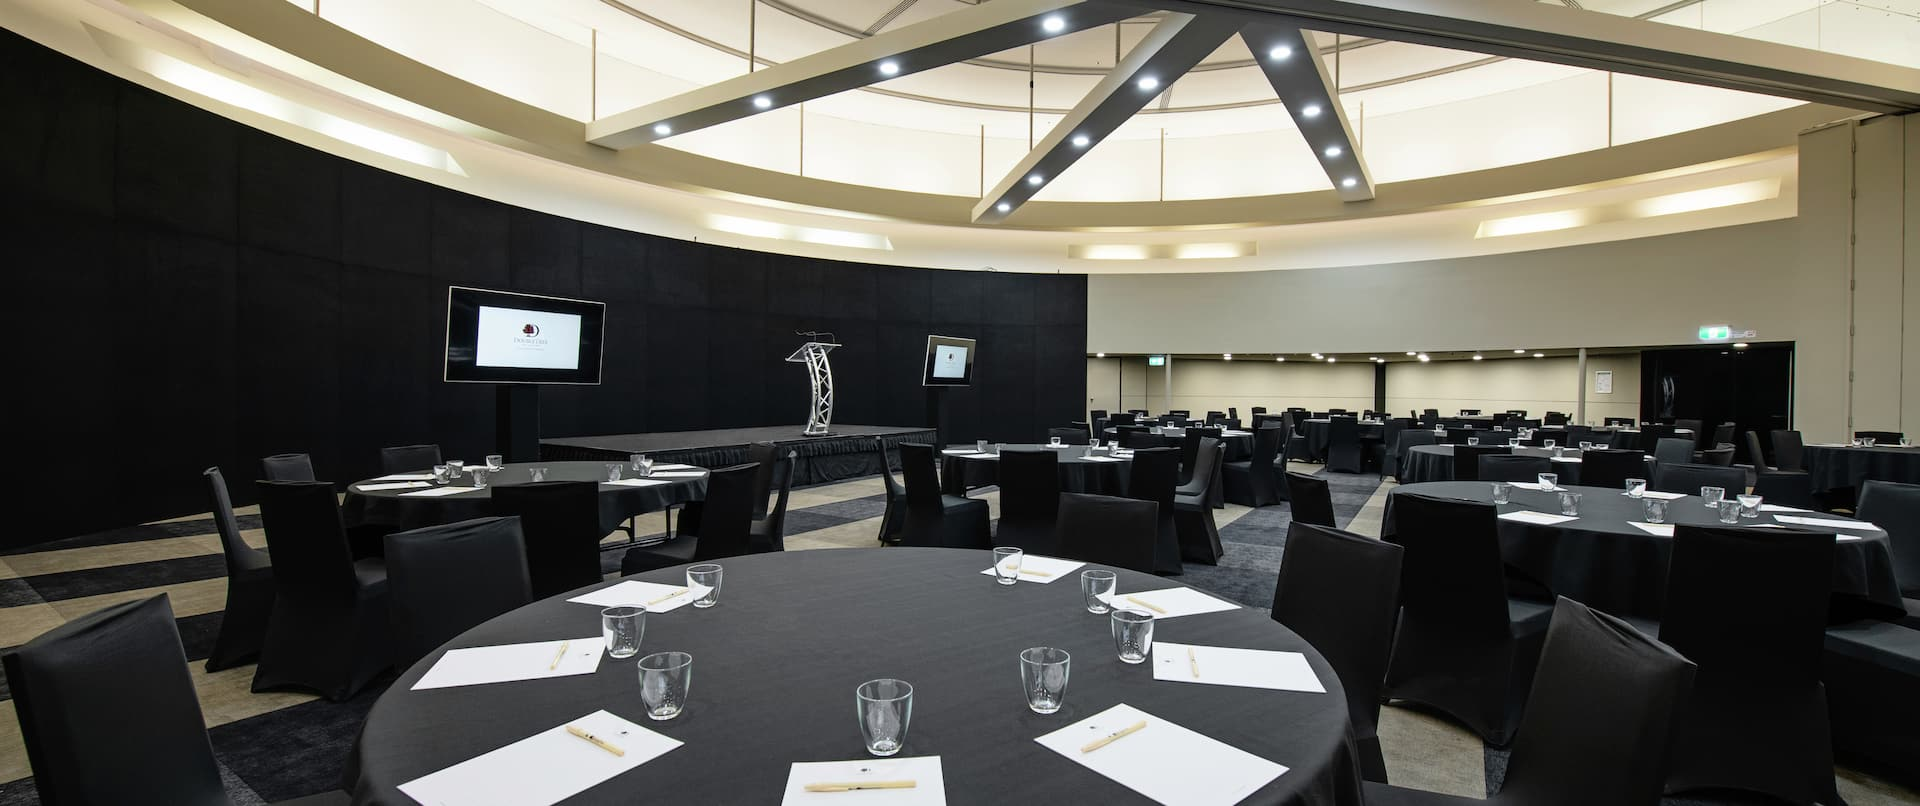 Grand Ballroom with Meeting Room Setup